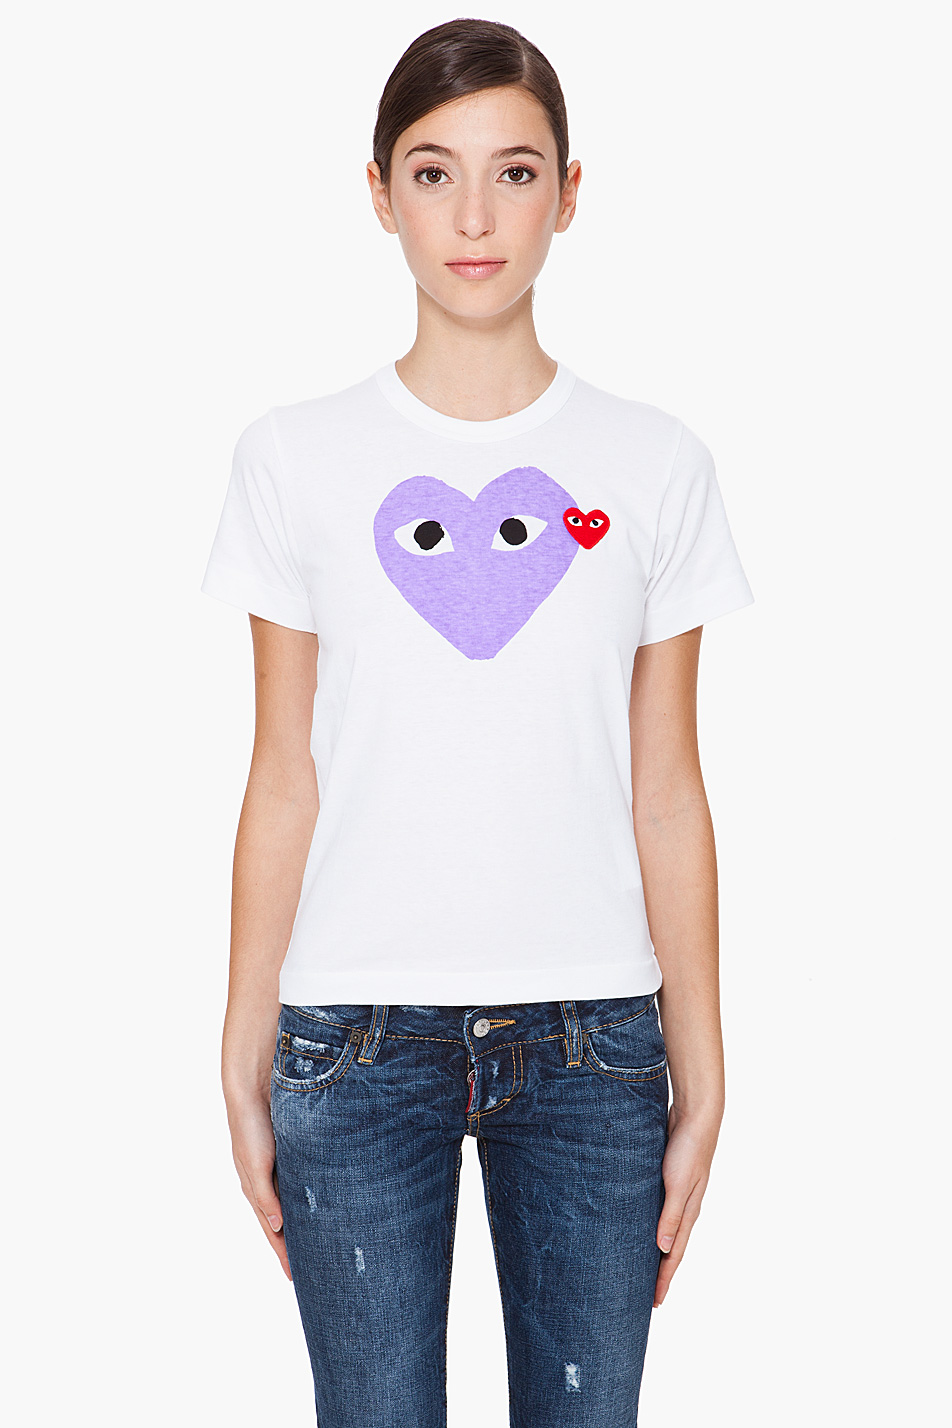 play comme des gar ons purple heart t shirt in purple lyst. Black Bedroom Furniture Sets. Home Design Ideas